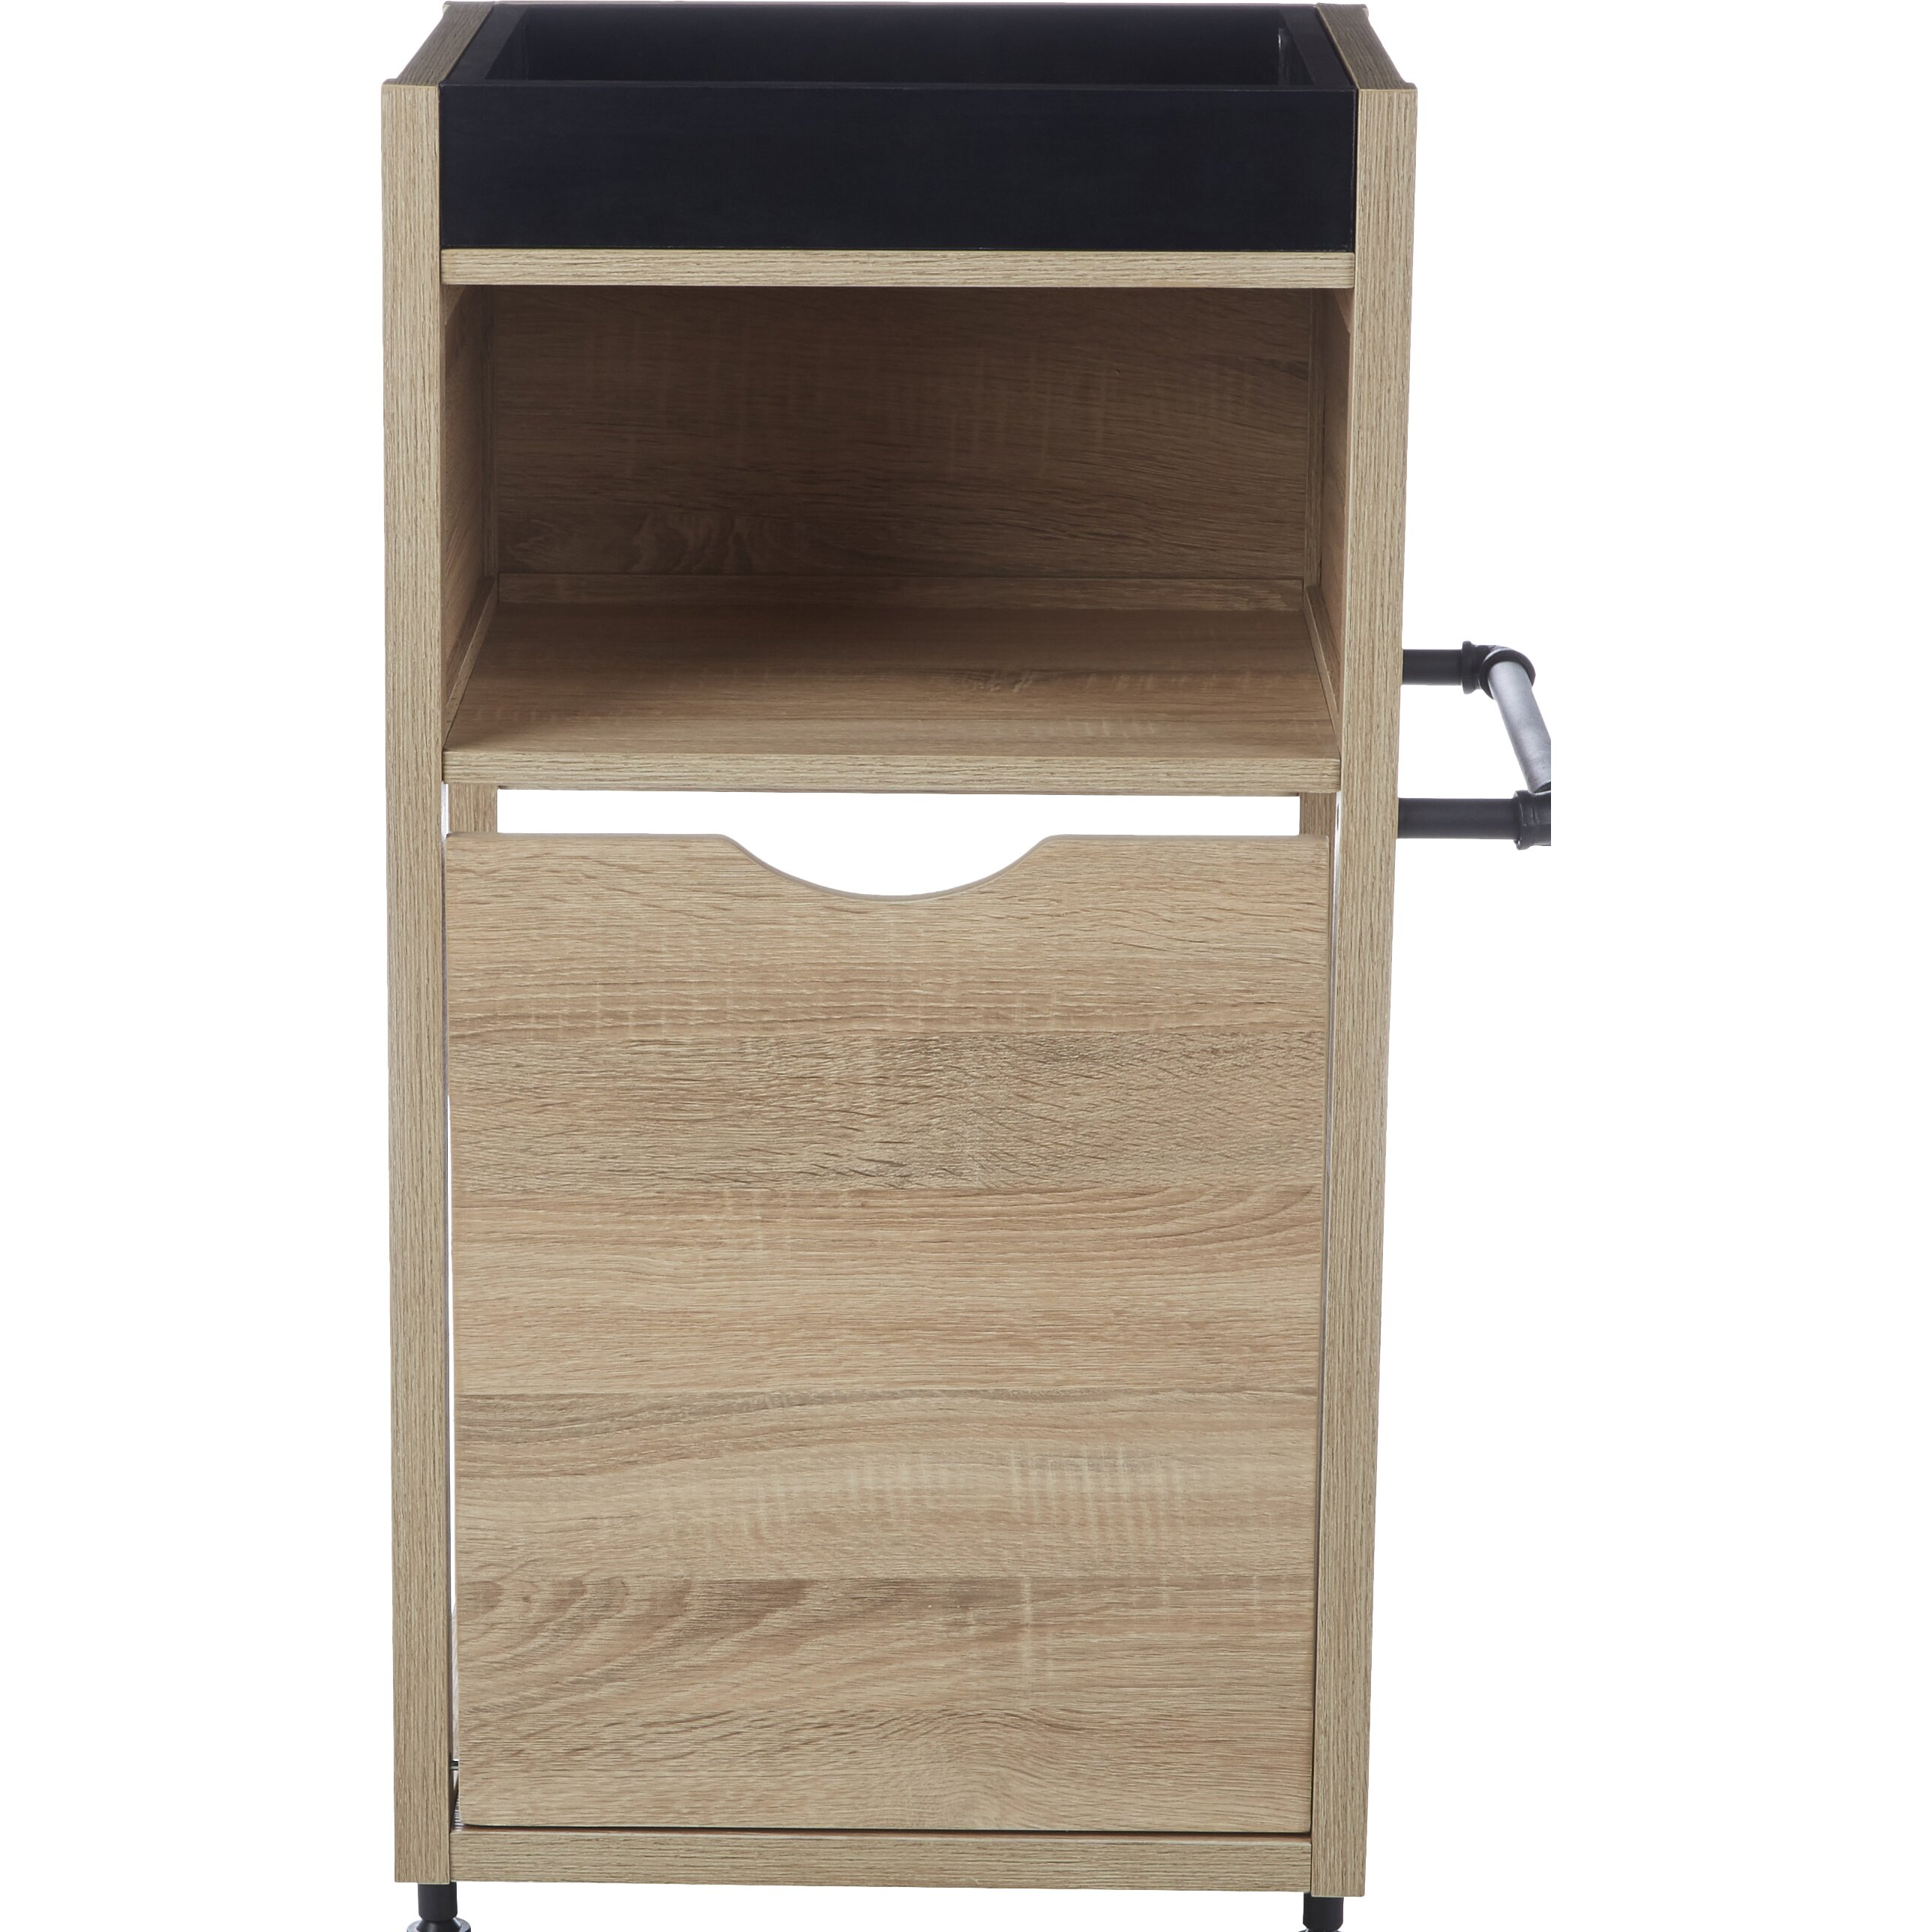 """Kitchen Cabinets Bronx Ny: Ivy Bronx Collinsworth Pull Out Hamper 17.63"""" W X 34.38"""" H"""